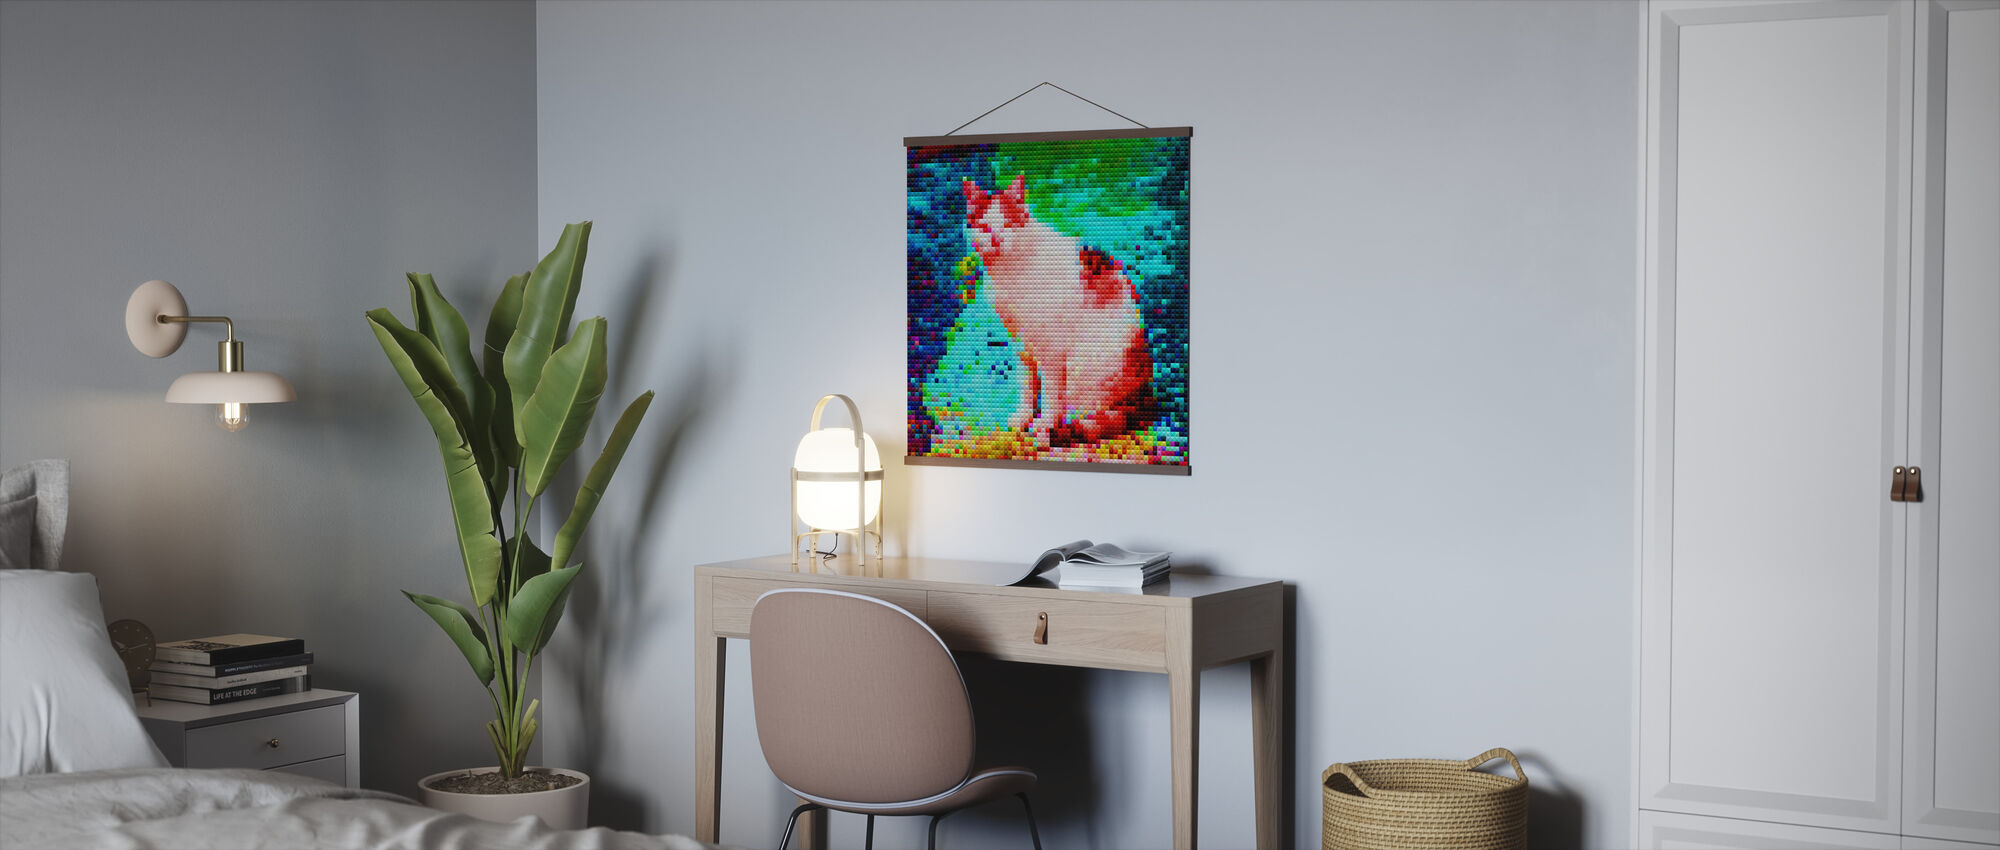 Mosaic Cat - Poster - Office